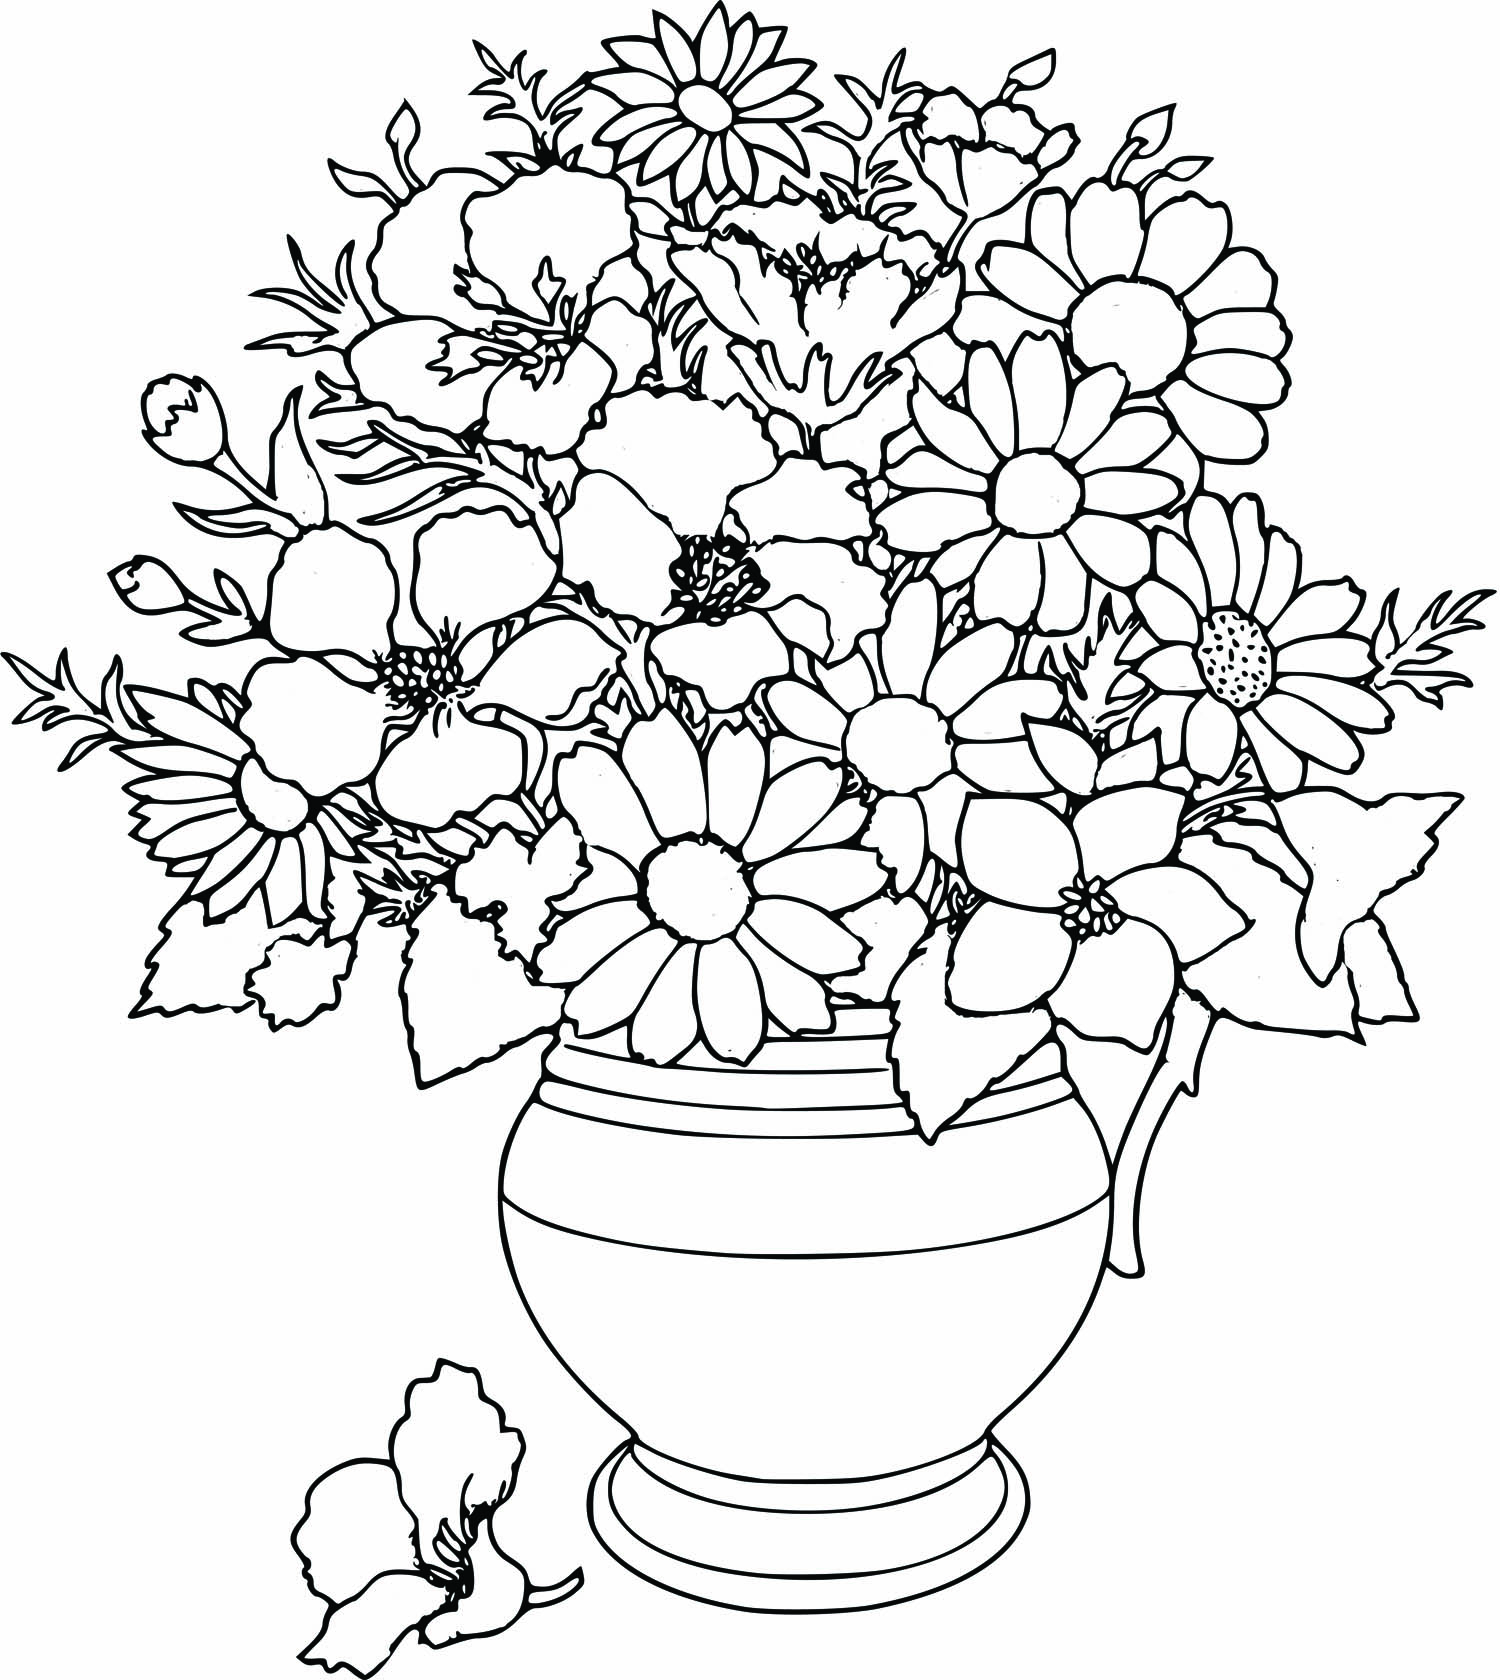 1500x1680 Free Beautifull Flower Coloring Pages With Flowers Glum Me Within